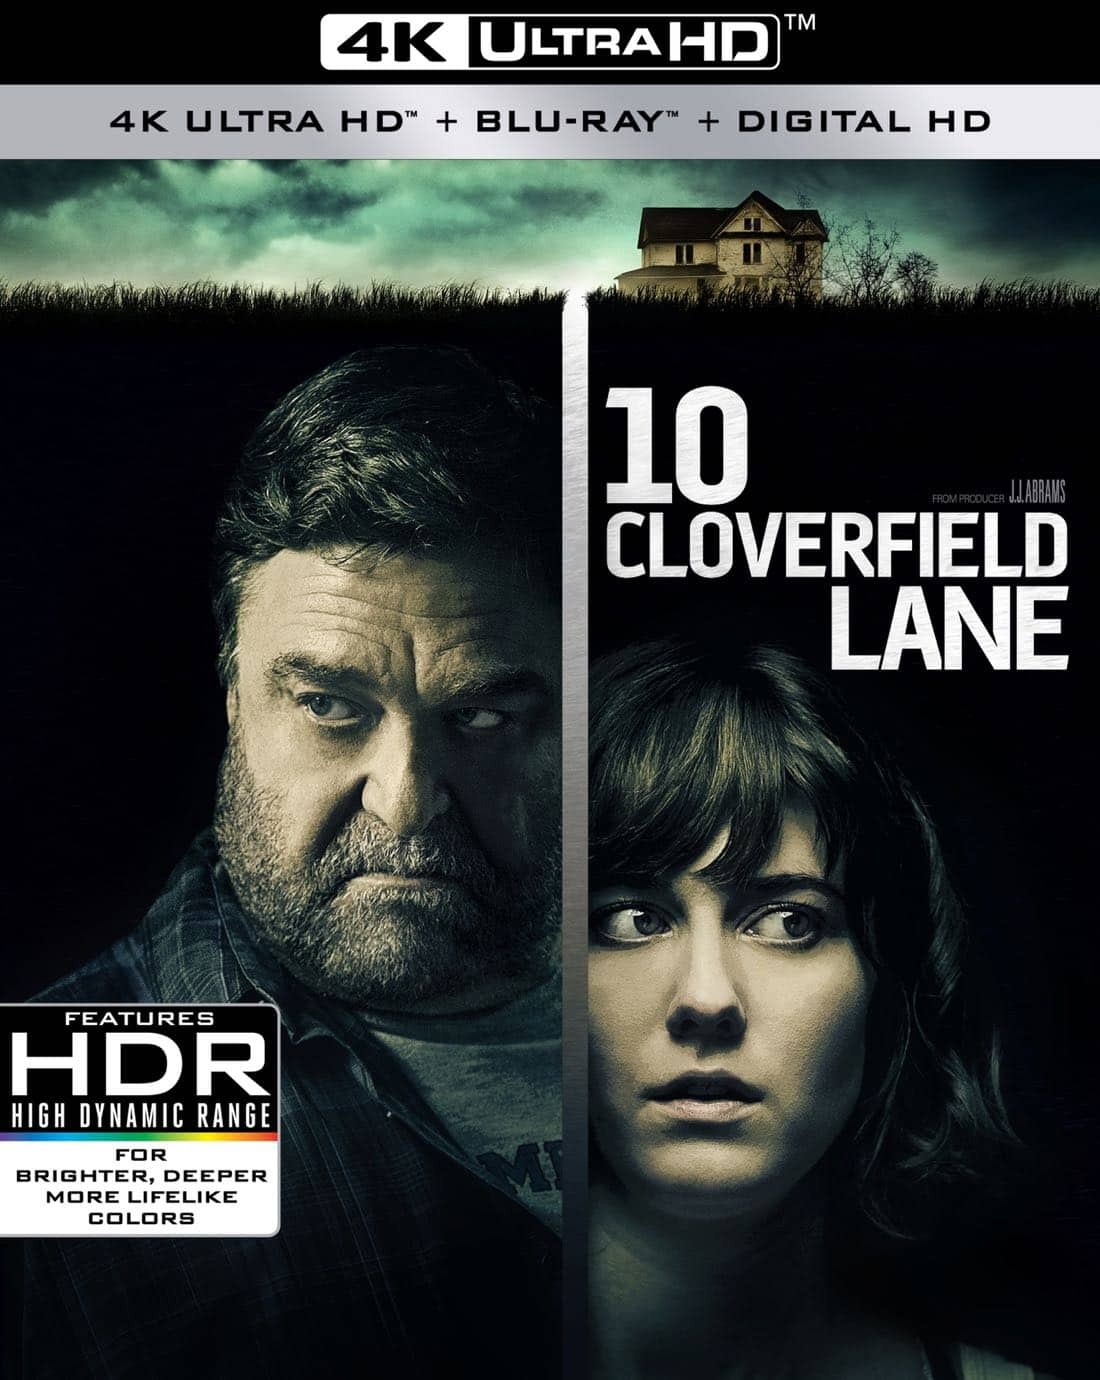 10-Cloverfield-Lane-4K_UHD_Front